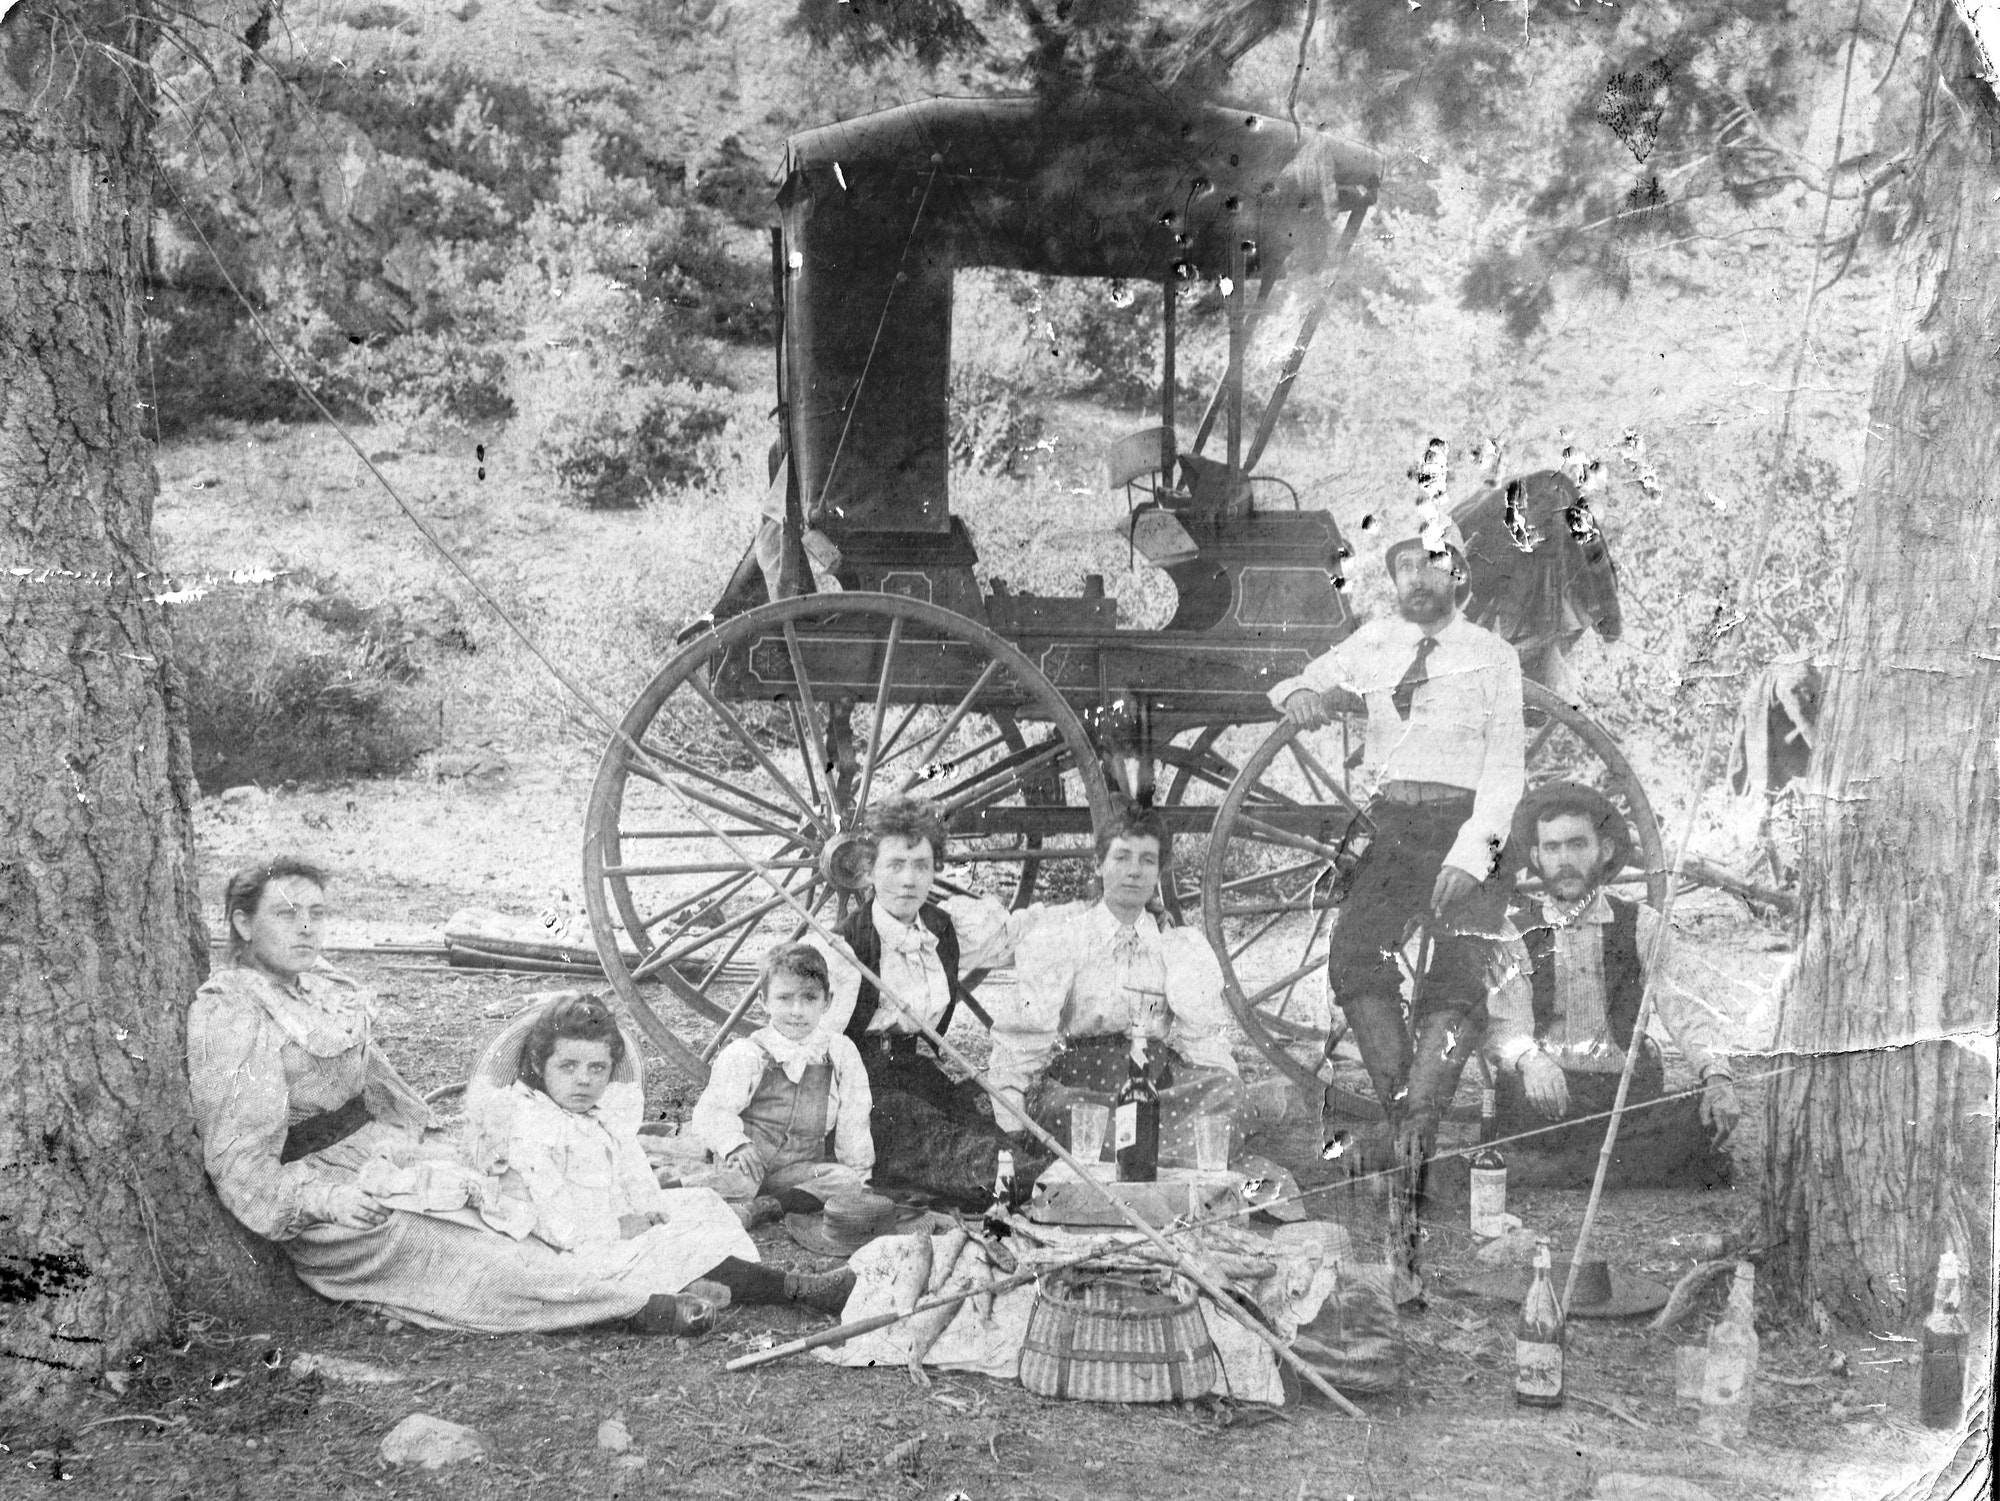 A family enjoys an outing at Bowman Lake in 1897.